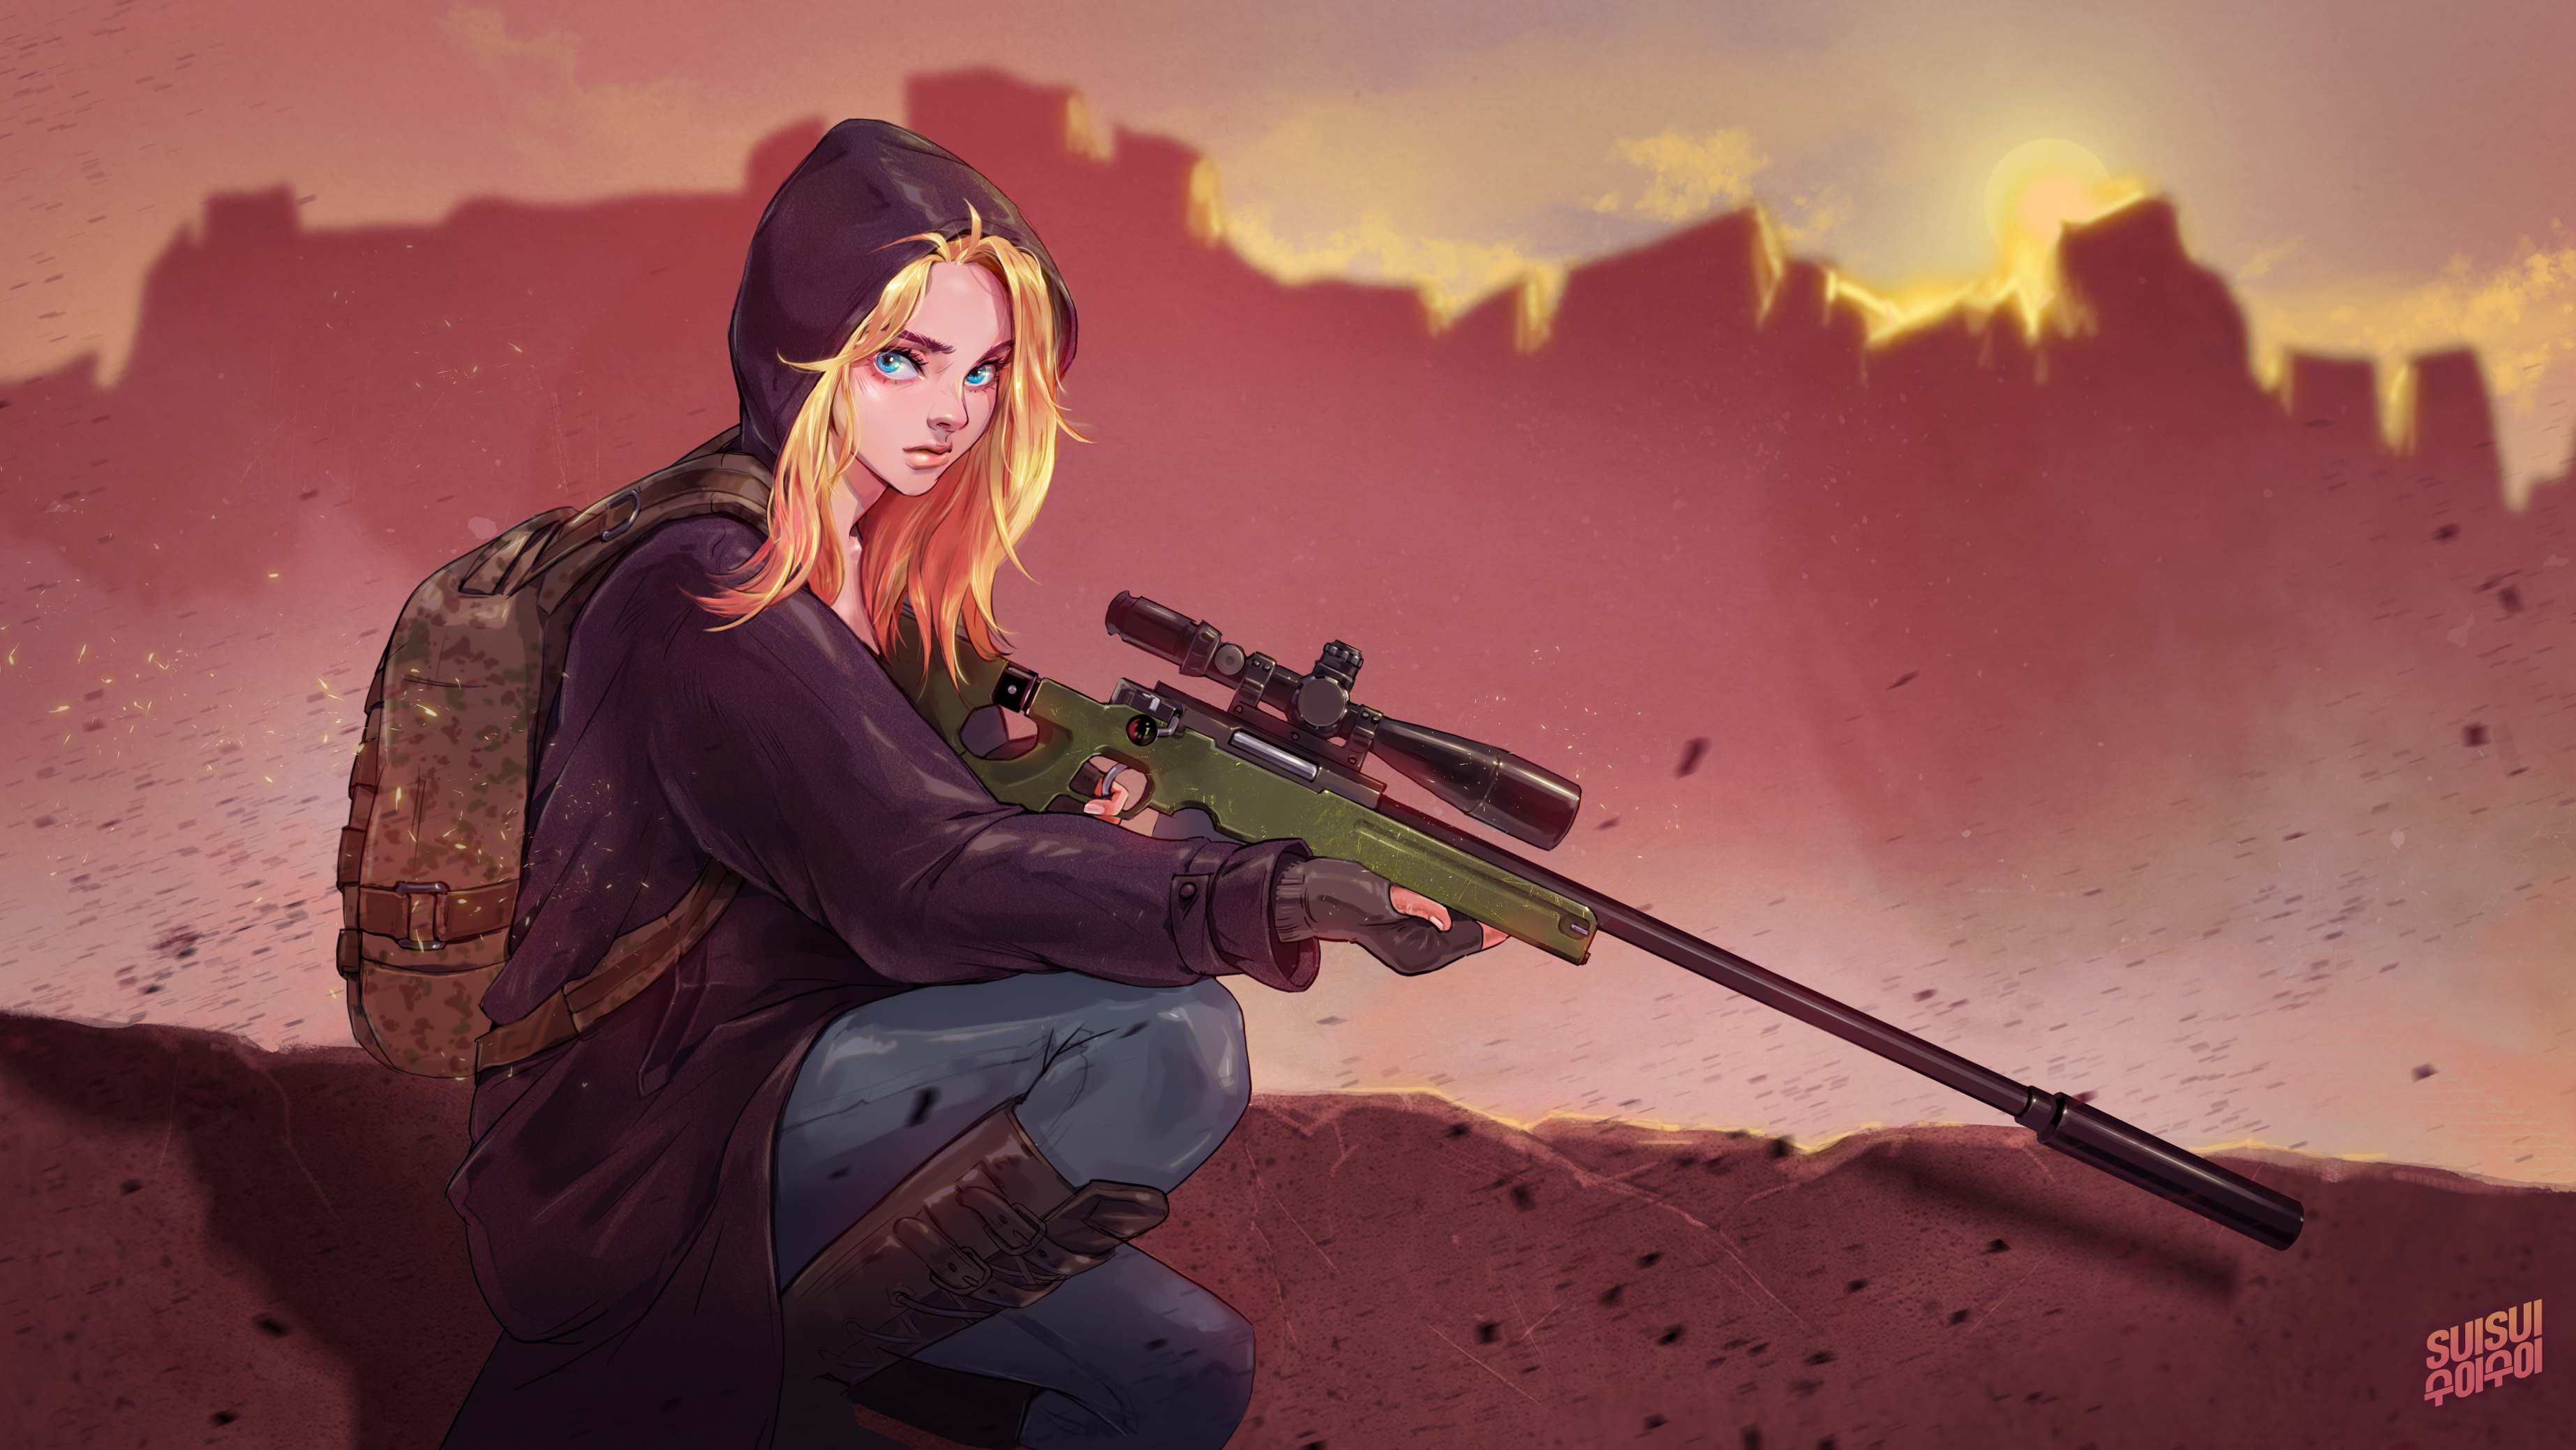 PUBG Wallpaper Engine Illustration By Hey-SUISUI On DeviantArt